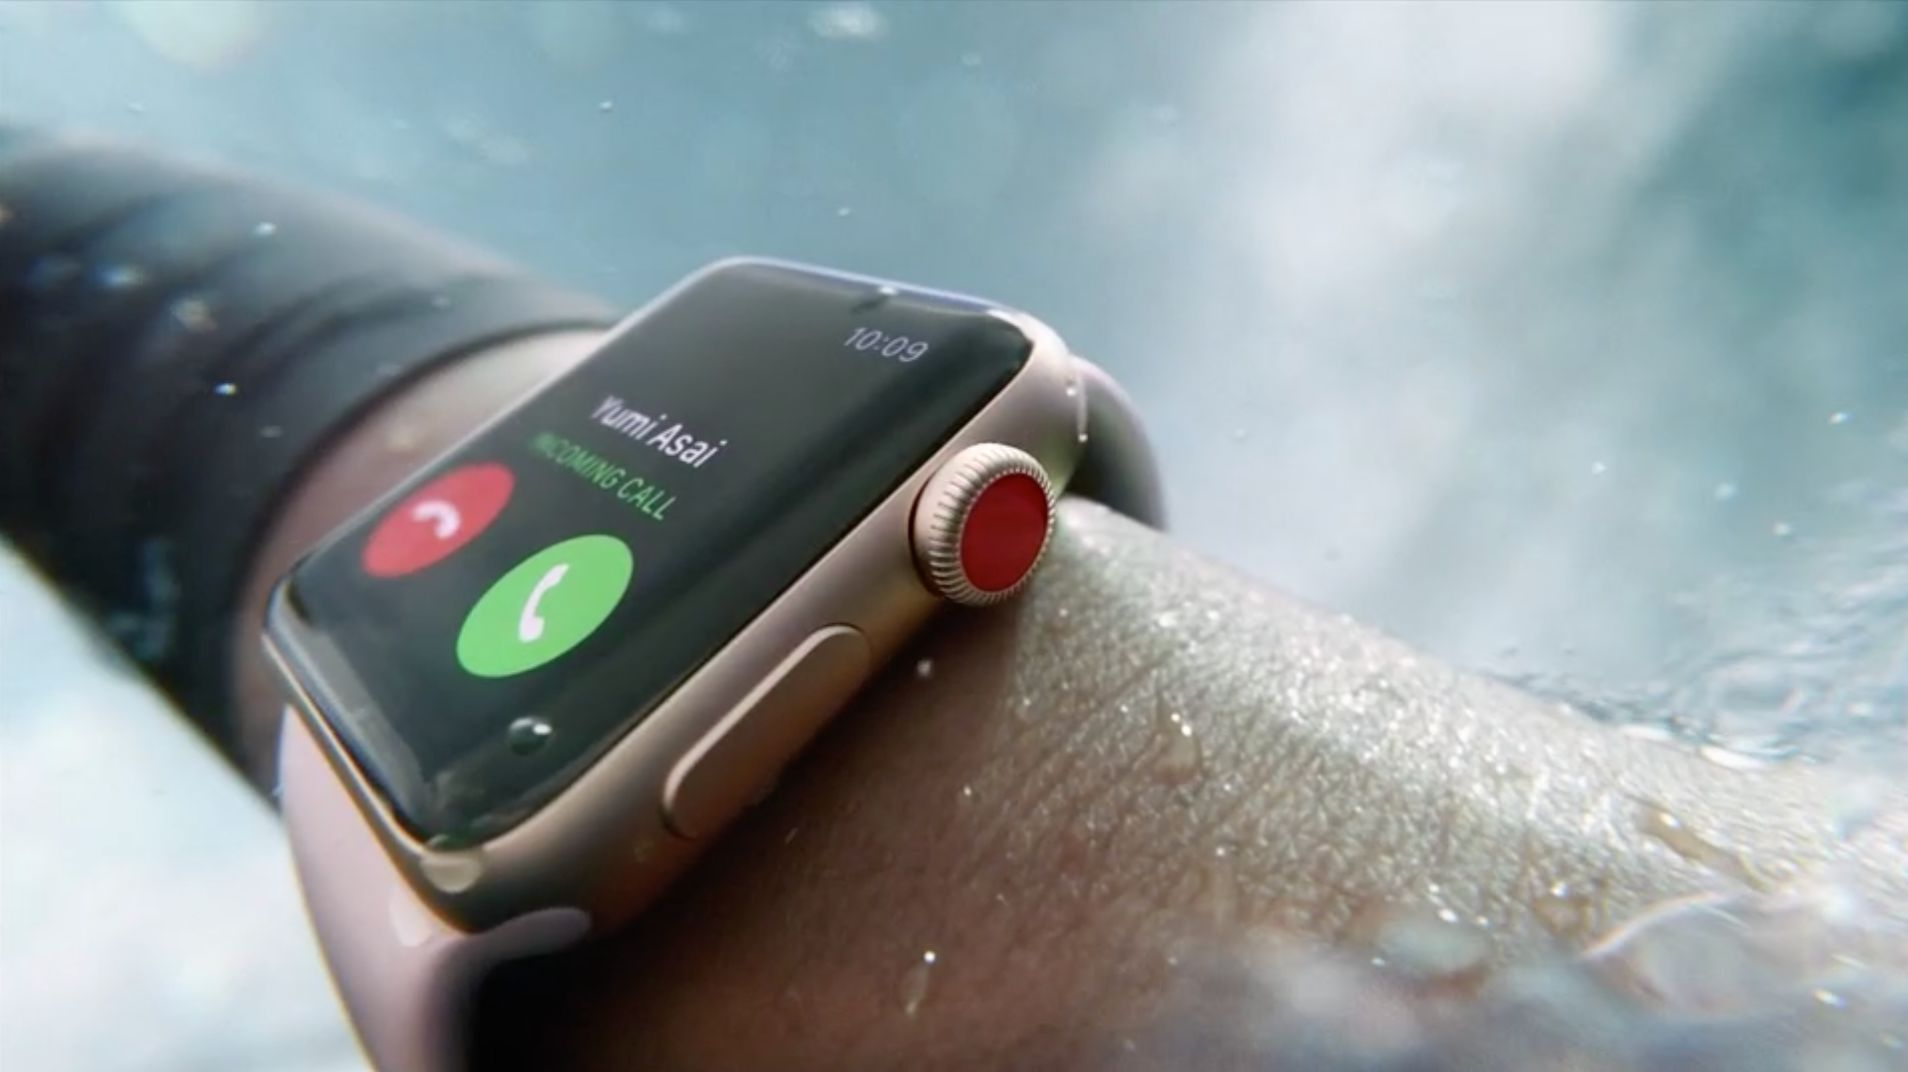 Apple Watch Series 3 4G: UK Price, Release Date And Specs ...